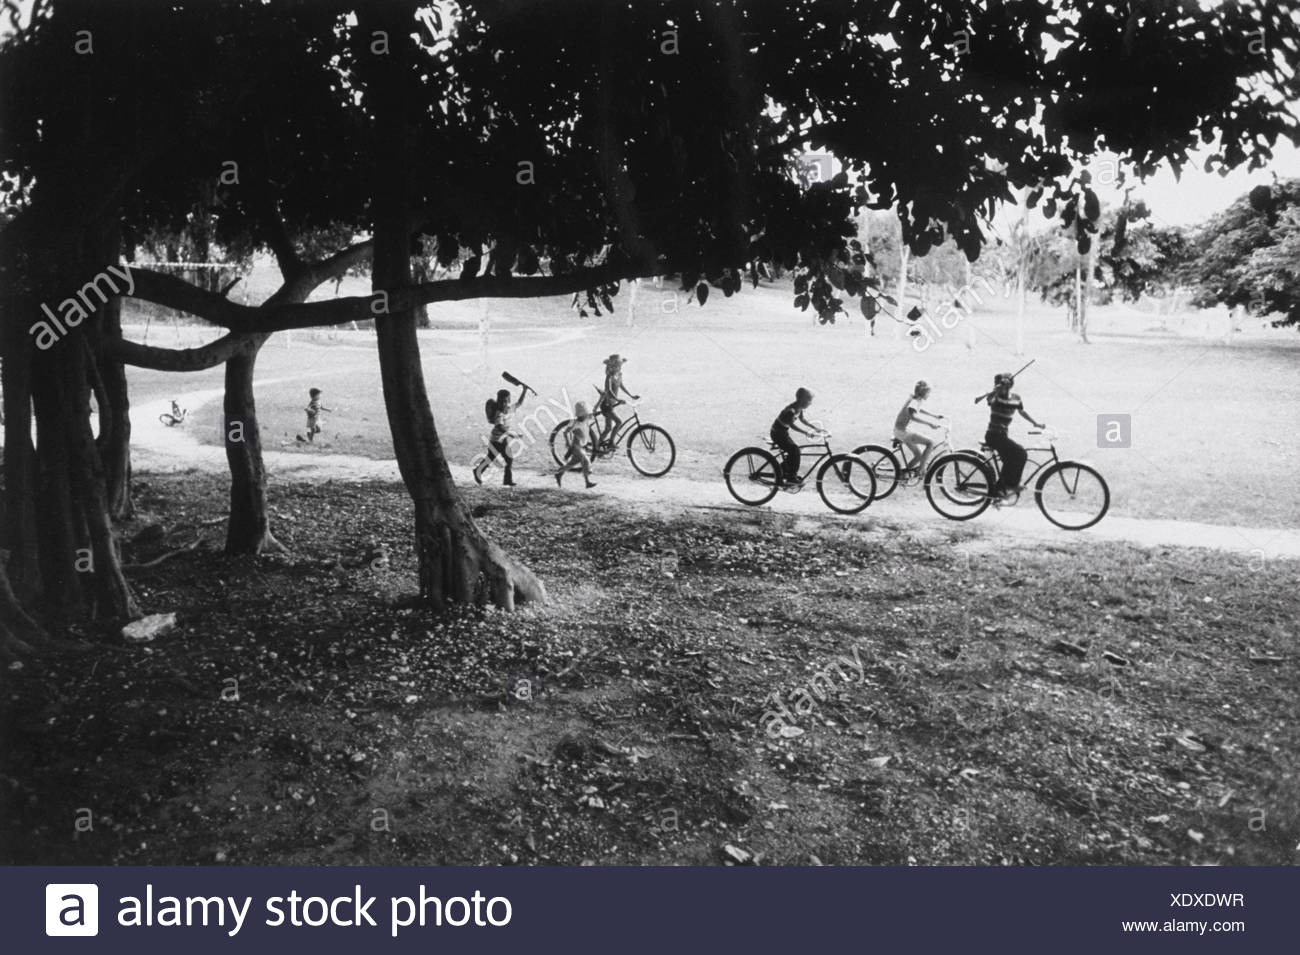 Big brother joins neighborhood boys in male bonding leaves kid sister anxious and fearful deserting her tricycle - Stock Image